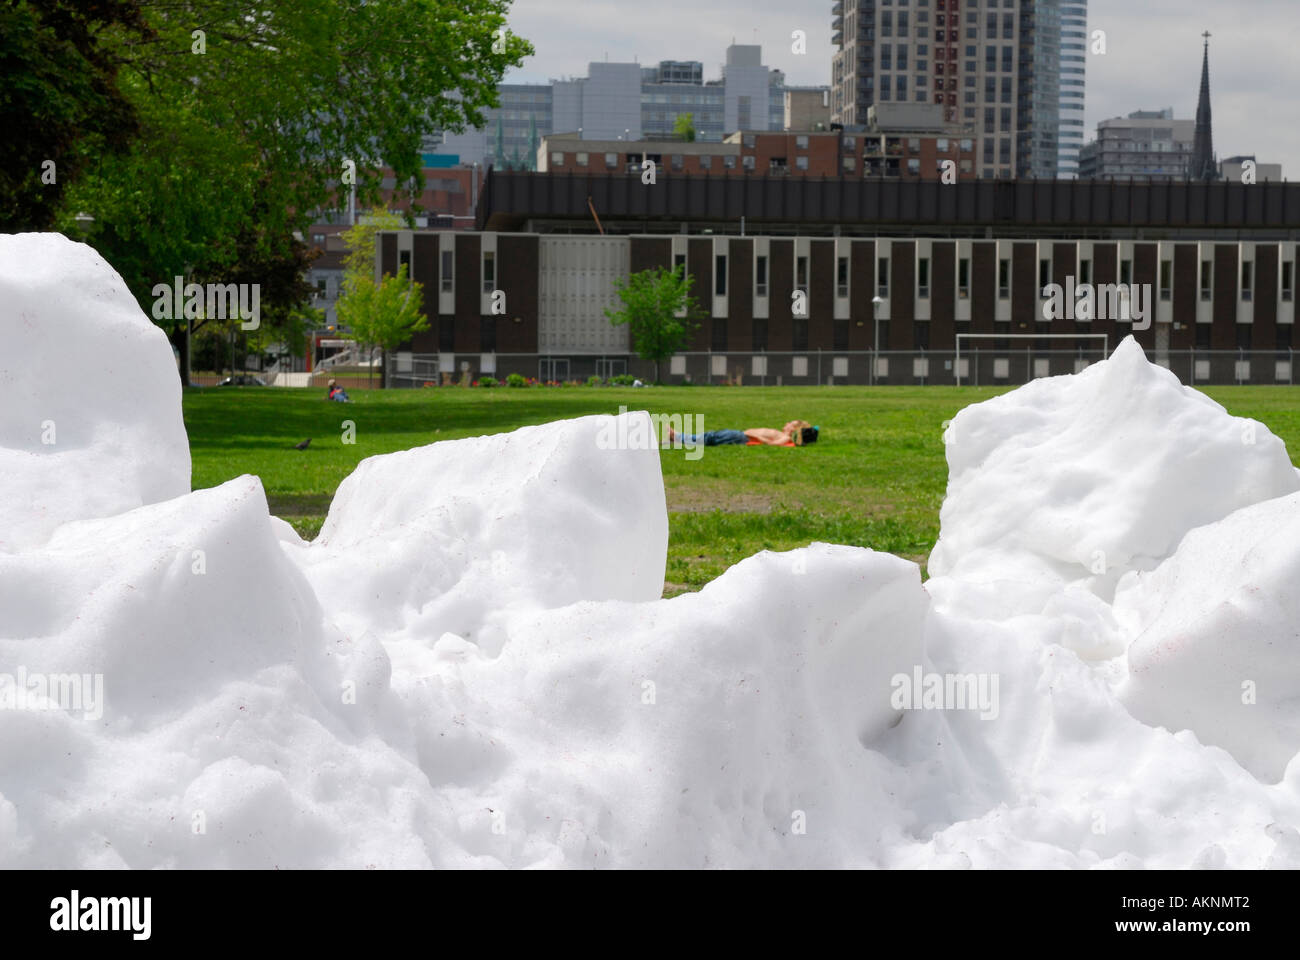 Shirtless sunbather on green grass in Spring with white snow in foreground Toronto - Stock Image